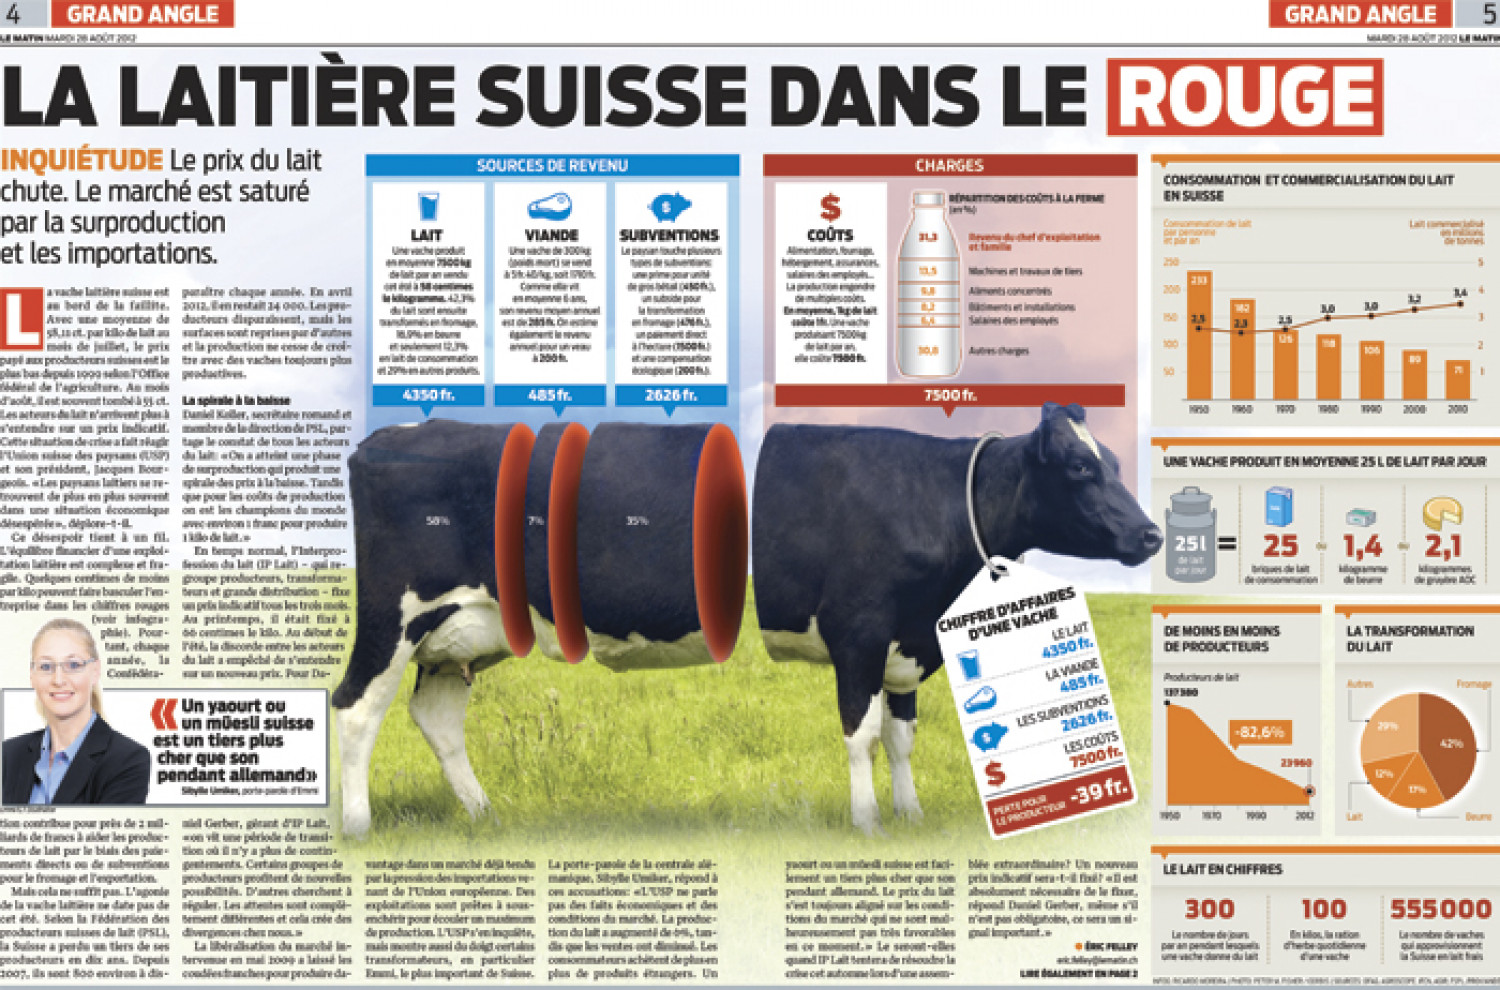 La production du lait en Suisse Infographic